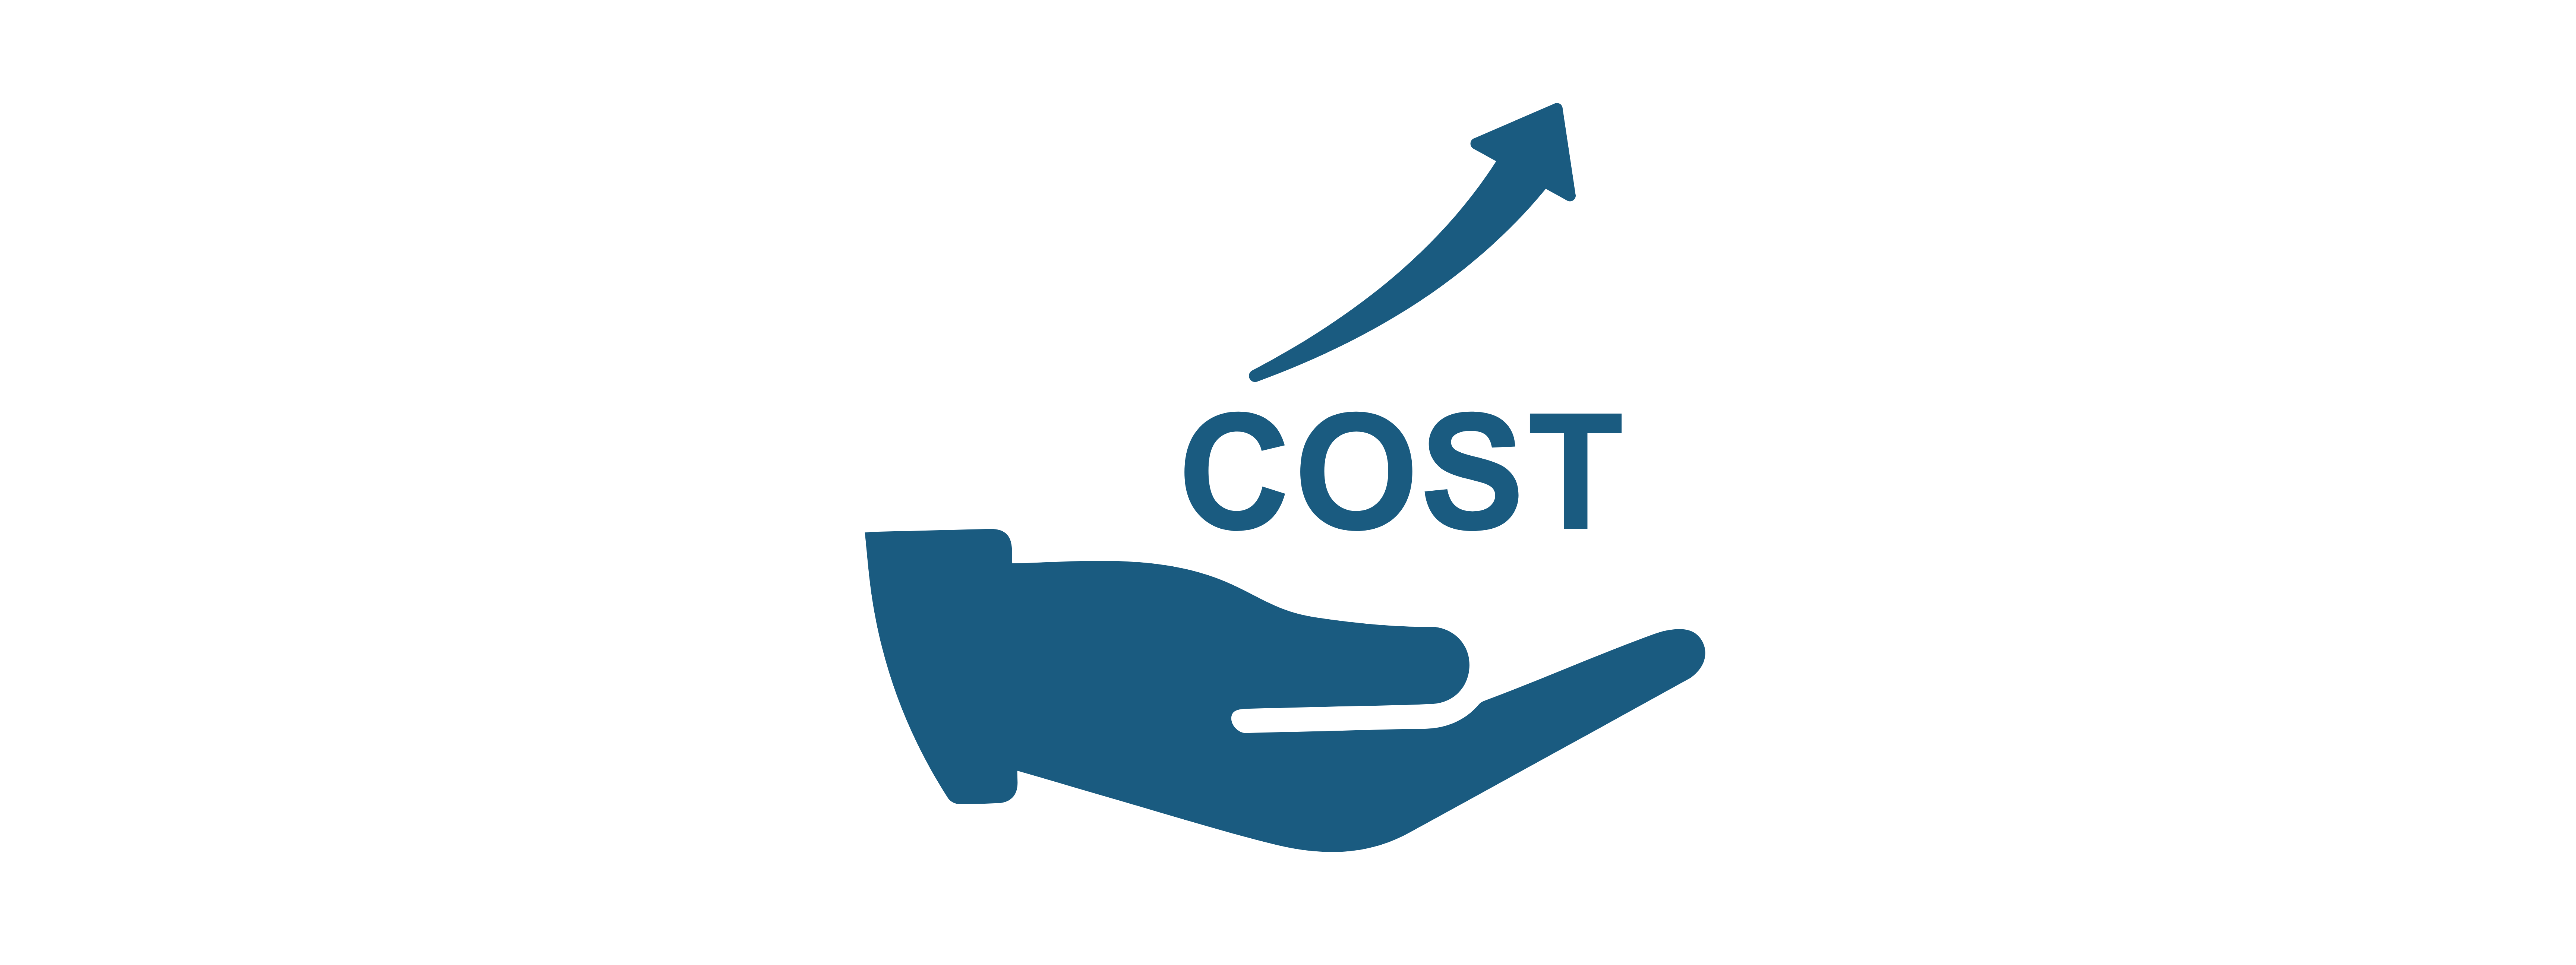 automated payment system difficults with high costs of multiple payment geteways